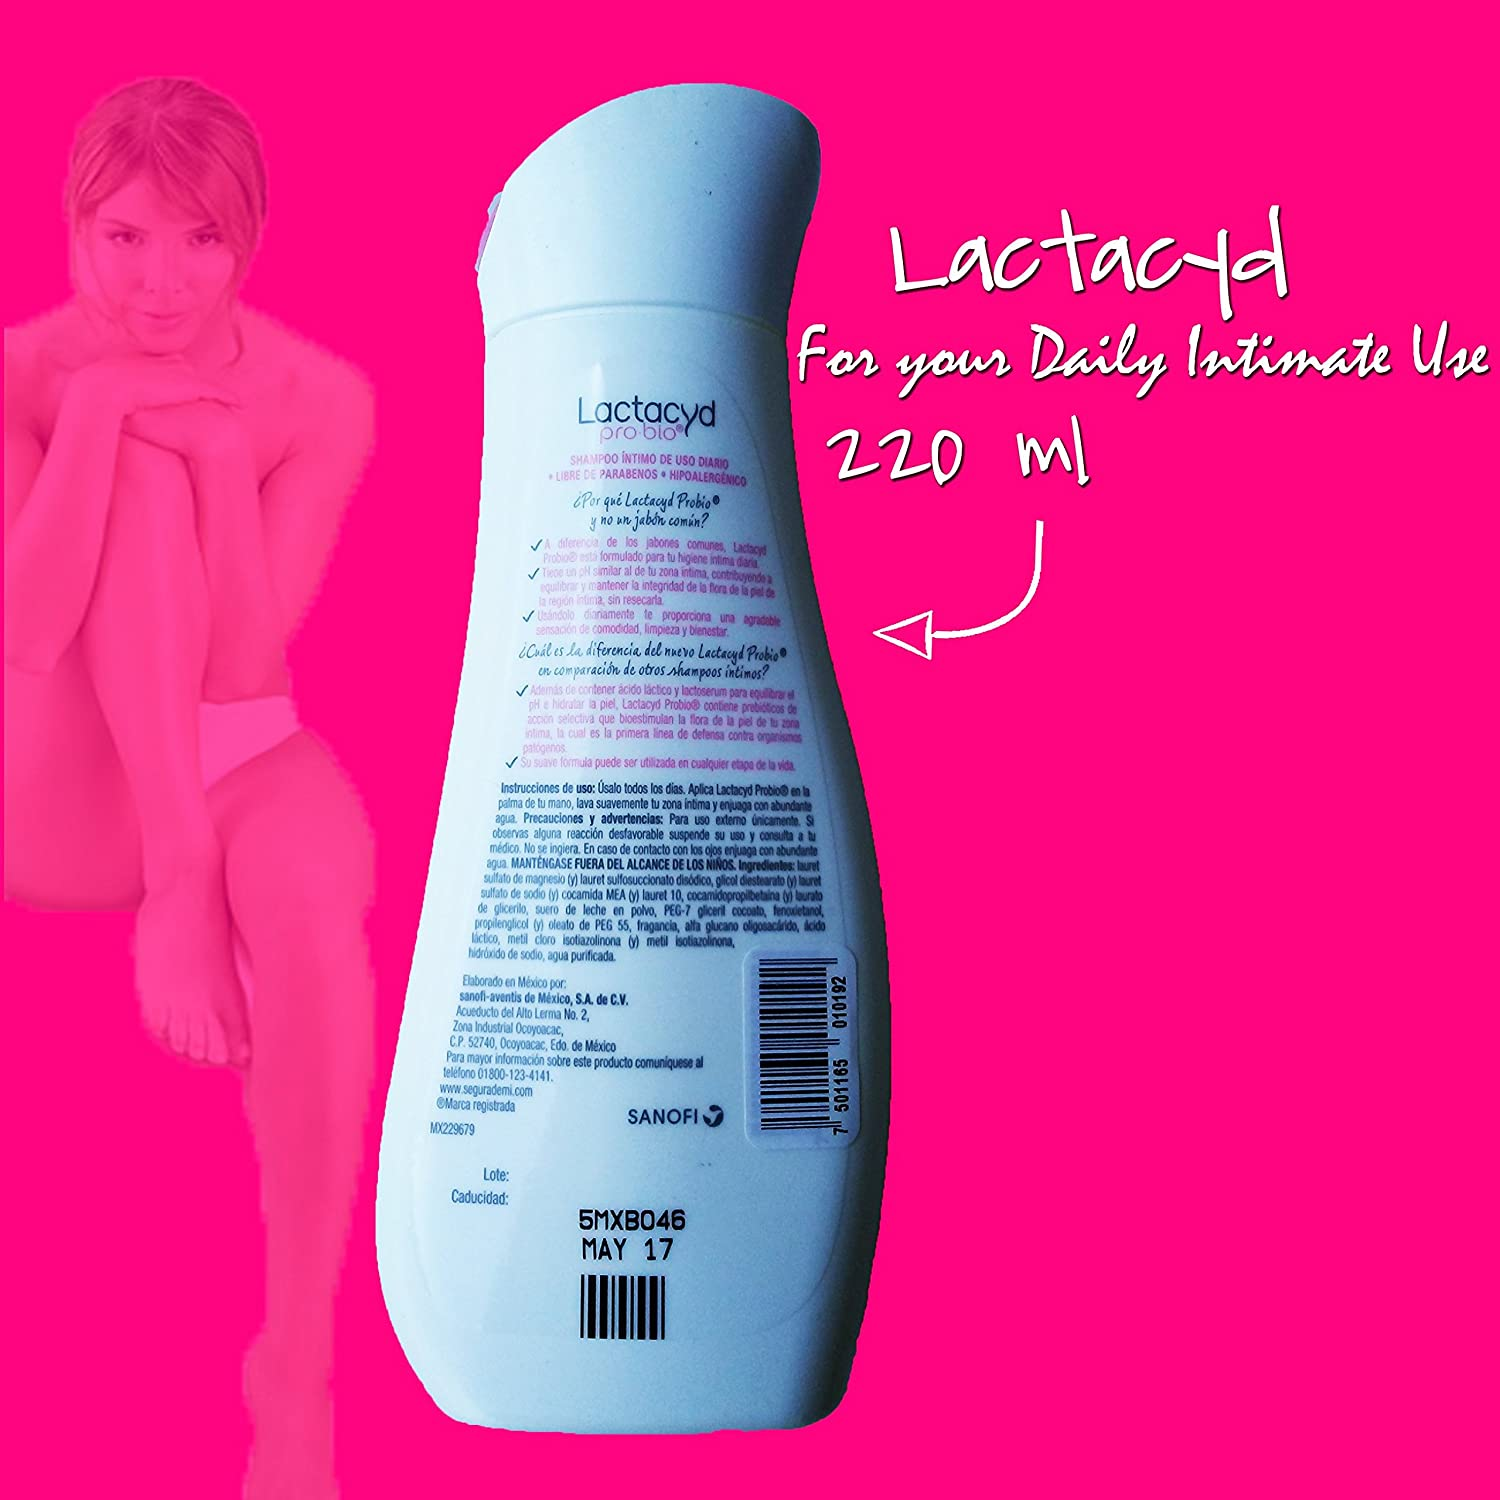 Amazon.com: Lactacyd Shampoo the Original for Intimate Health, Femina Daily Protective Created for the Care and Welfare of the Intimate Health of ...